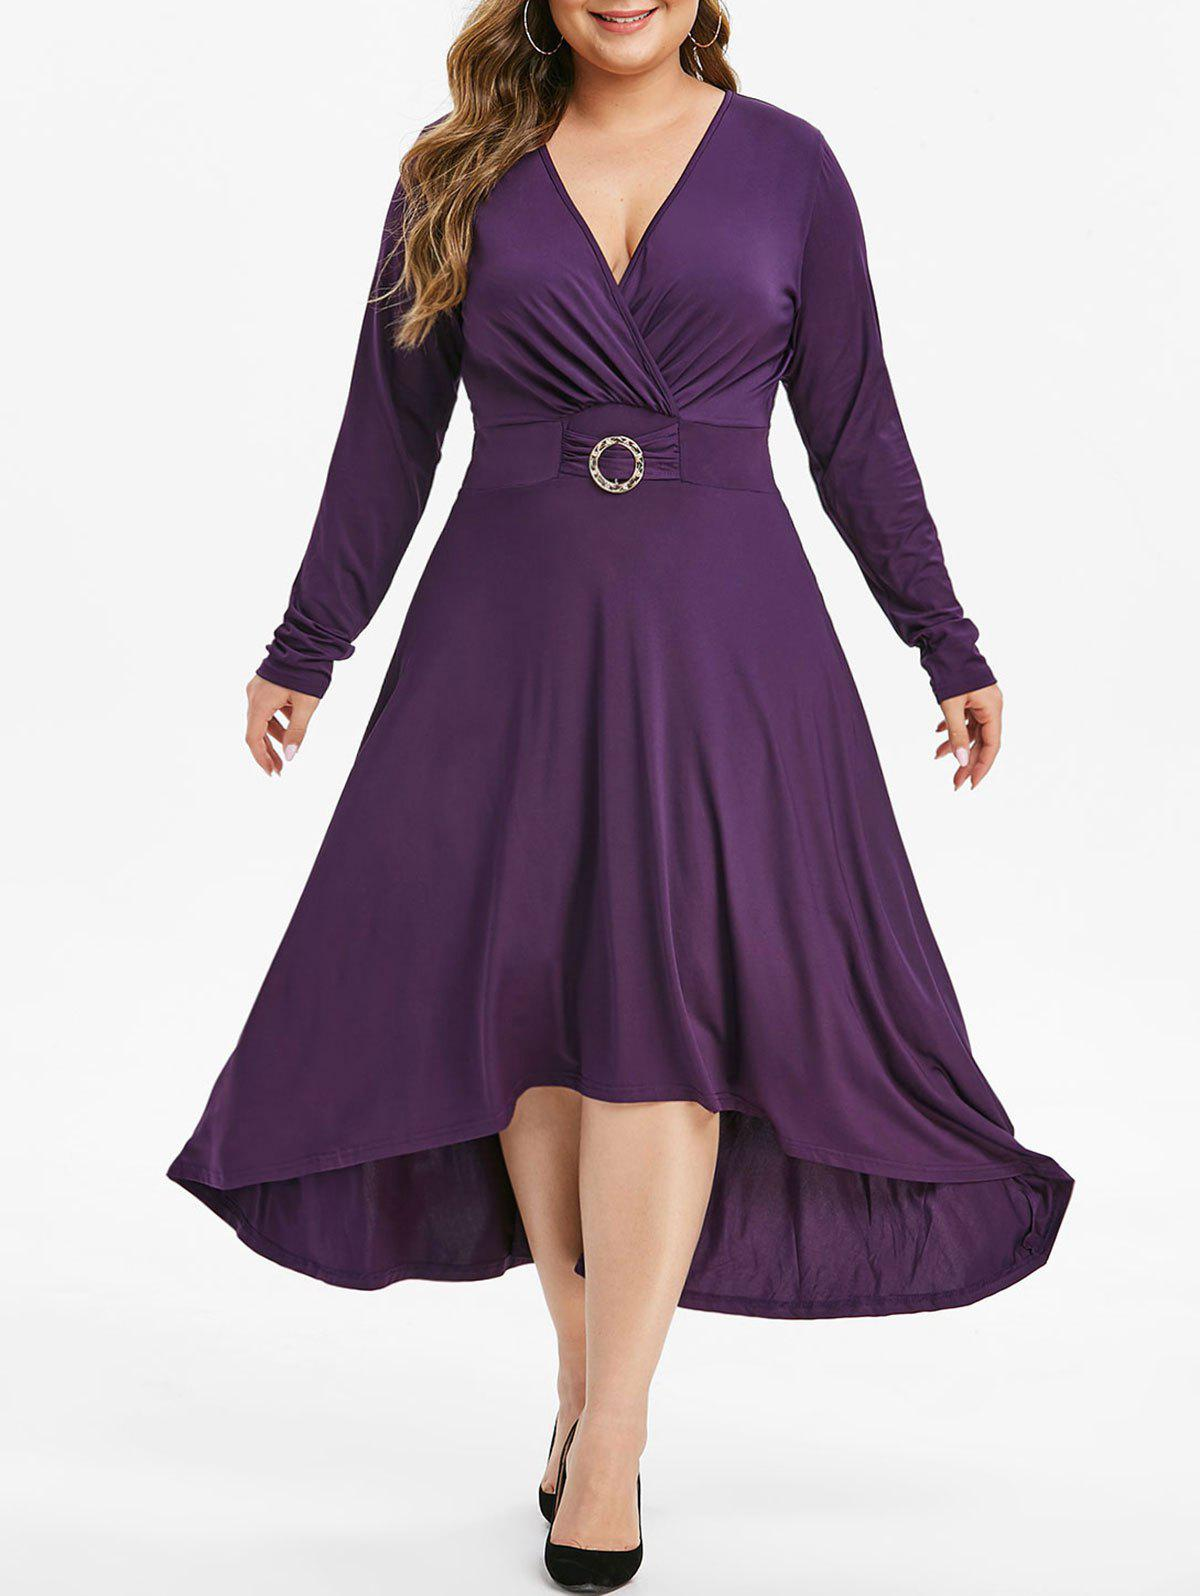 Rhinestone O Ring High Low Long Sleeve Plus Size Dress - PURPLE IRIS 1X